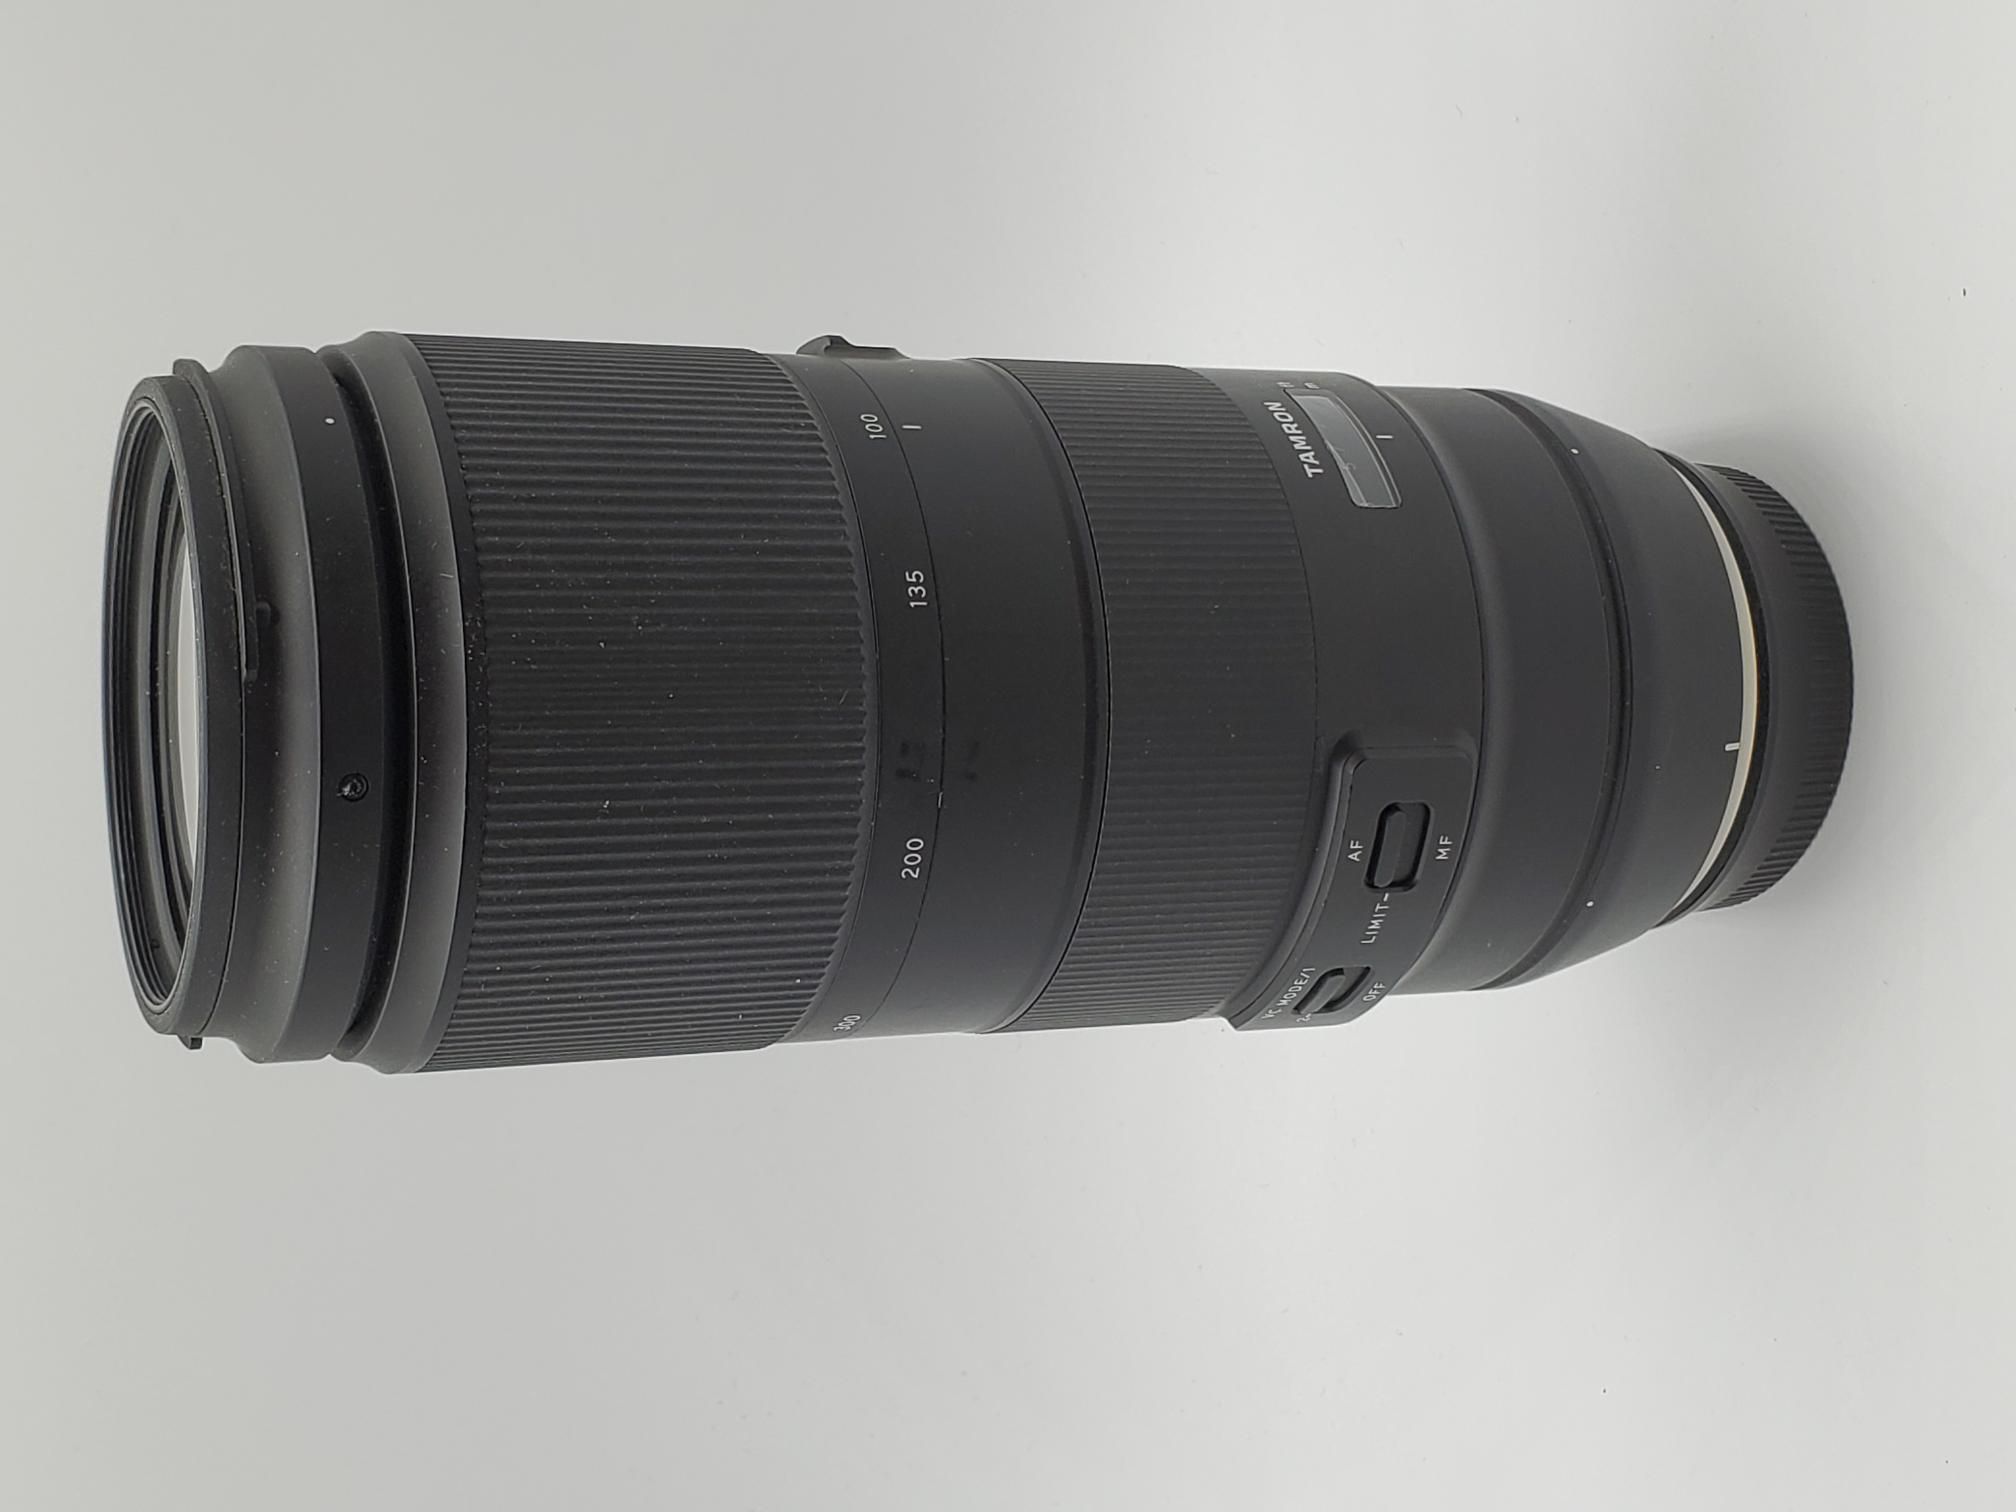 USED Tamron 100-400mm F4.5-6.3 Di VC USD Lens for Canon